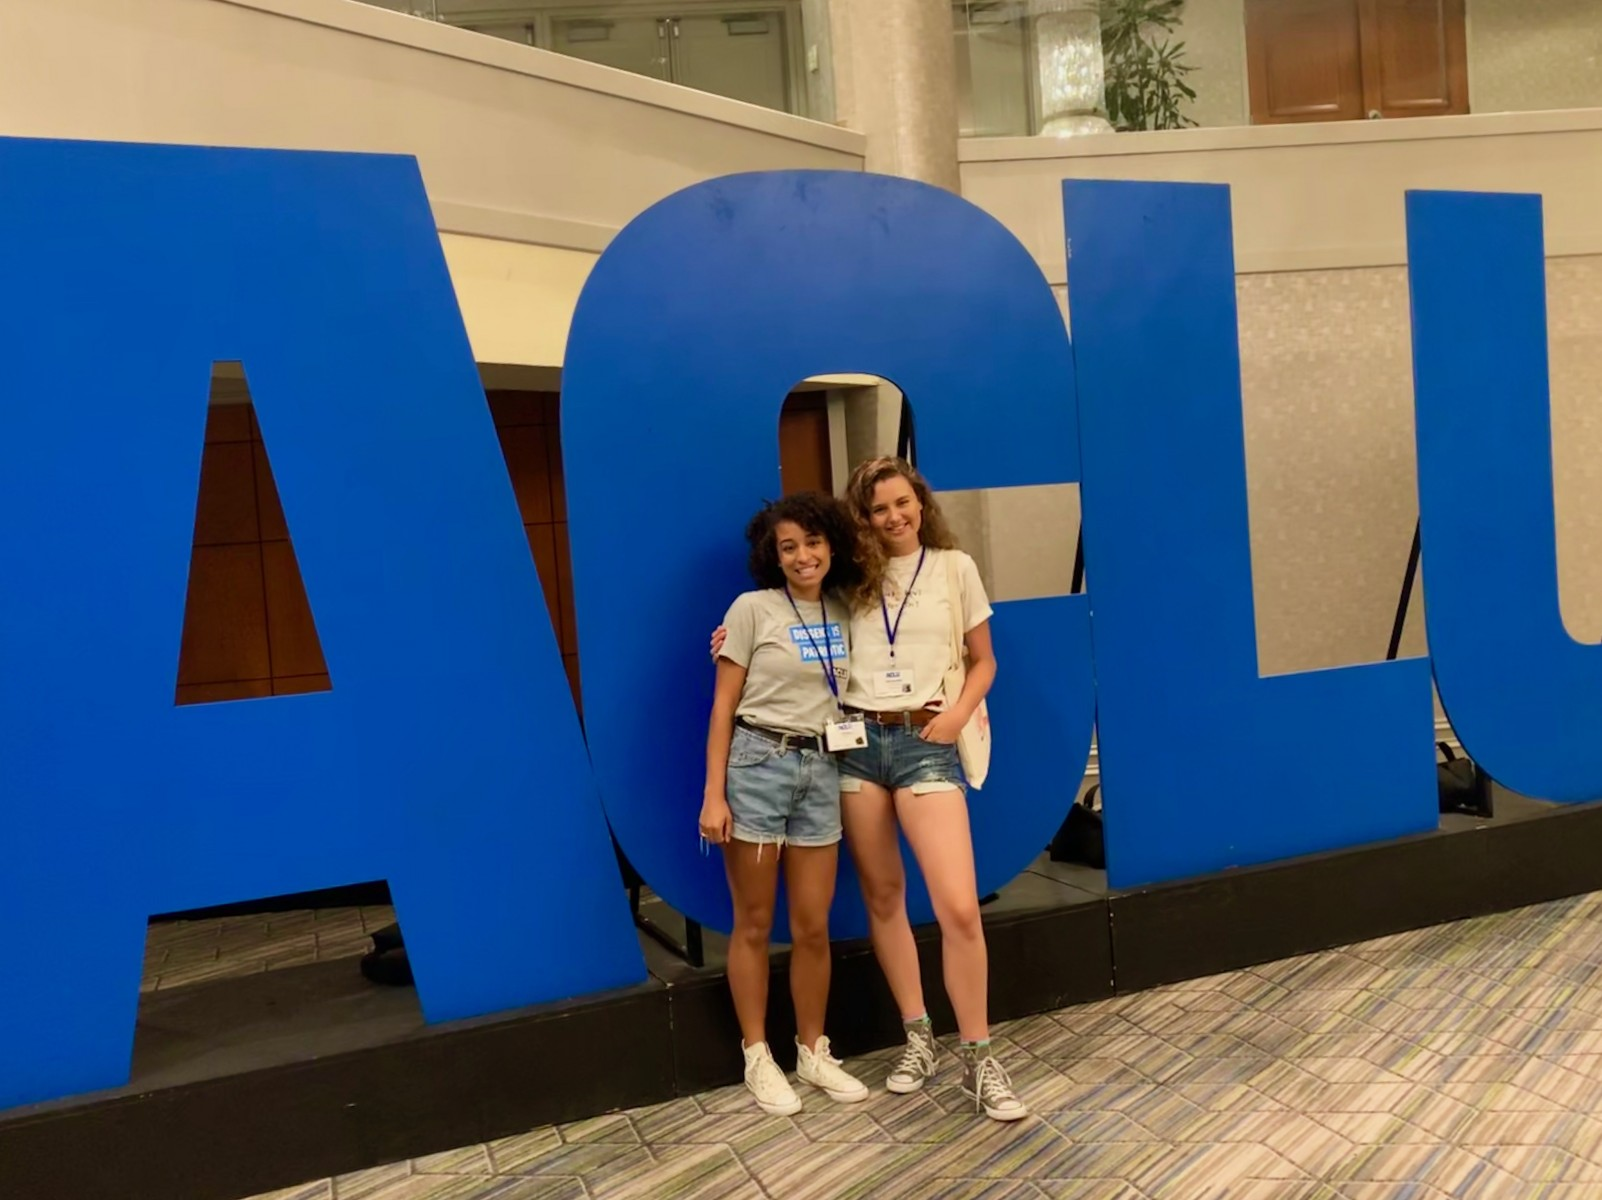 CSUSM students Janelle Esprit (left) and Samantha Caracciolo, who both work in the Office of Inclusive Excellence, participated in the ACLU Advanced Advocacy Institute in Washington, D.C., over the summer.